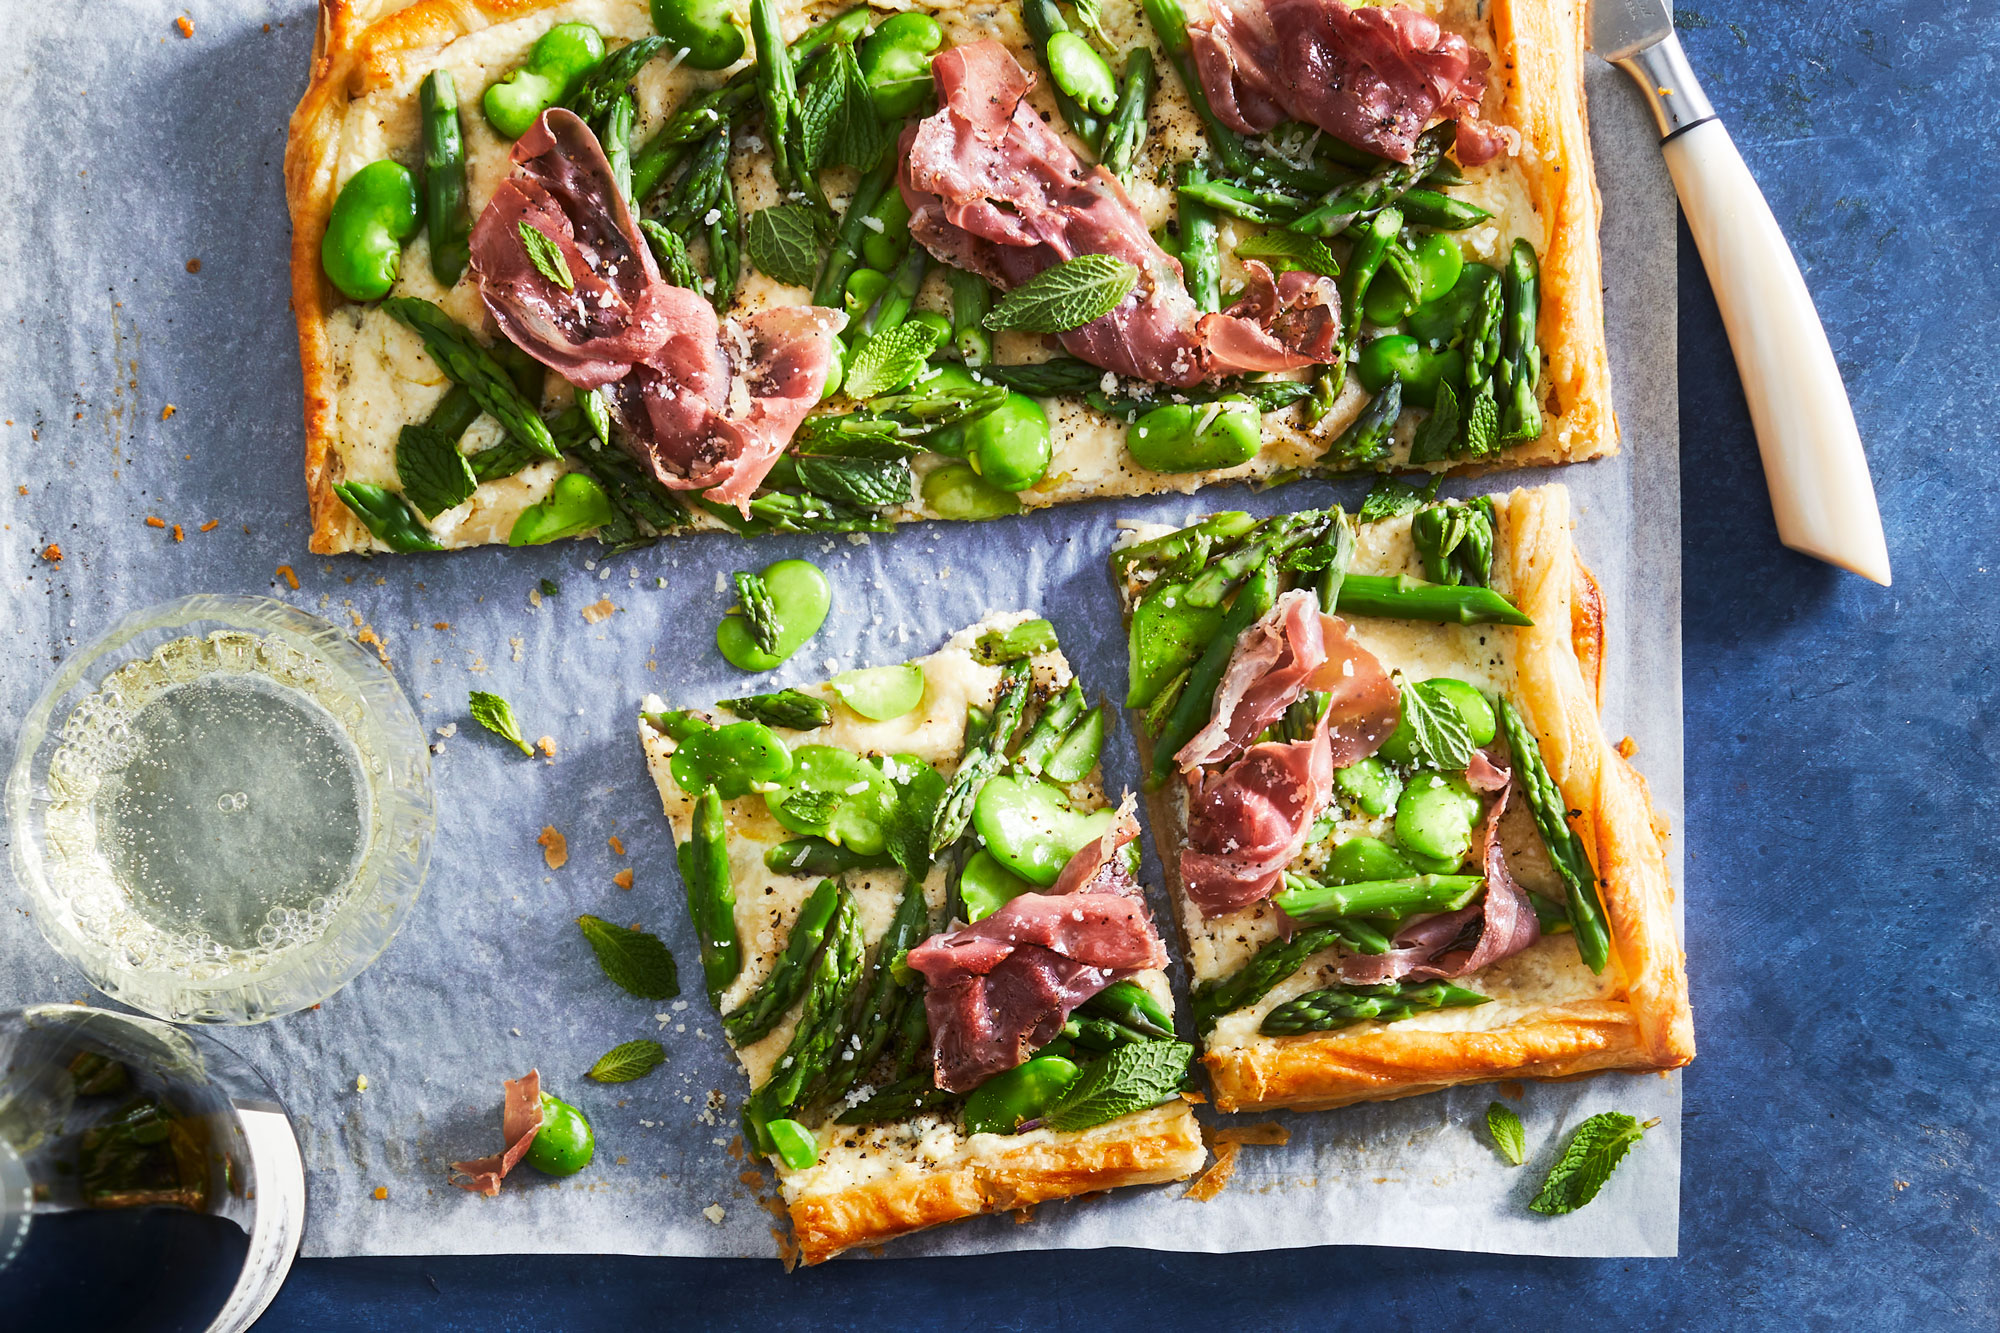 Asparagus and Fava Bean Tart with Herbed Ricotta